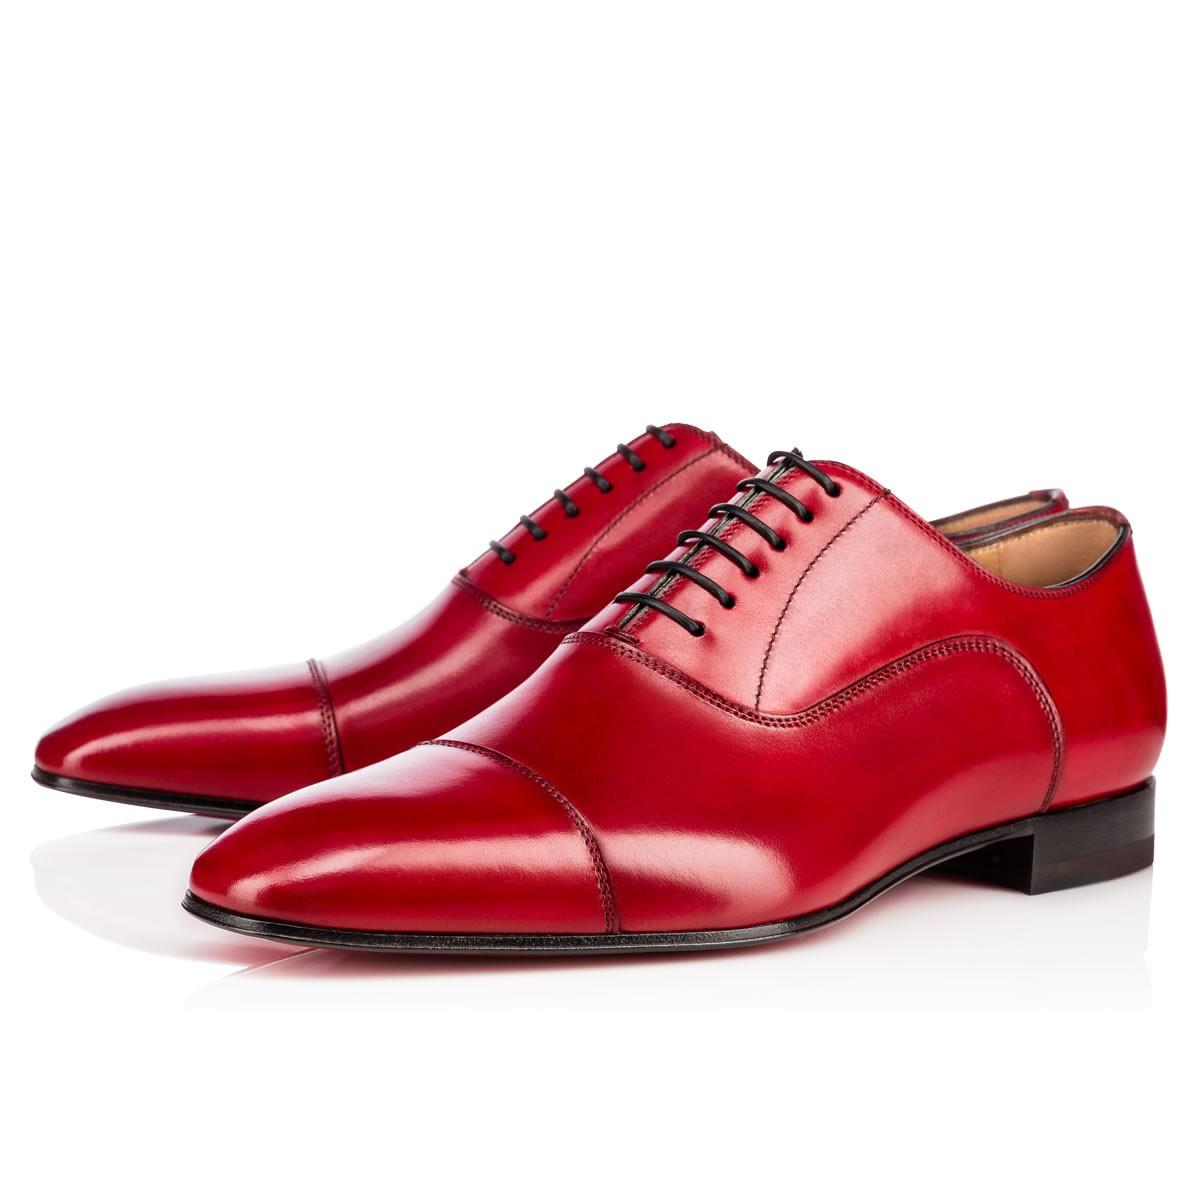 Brand Fashion Red Bottom Shoes Luxury Designer Flat Genuine Leather Oxford Shoes Mens Women Walking Flats Wedding Party Loafers EU38-47